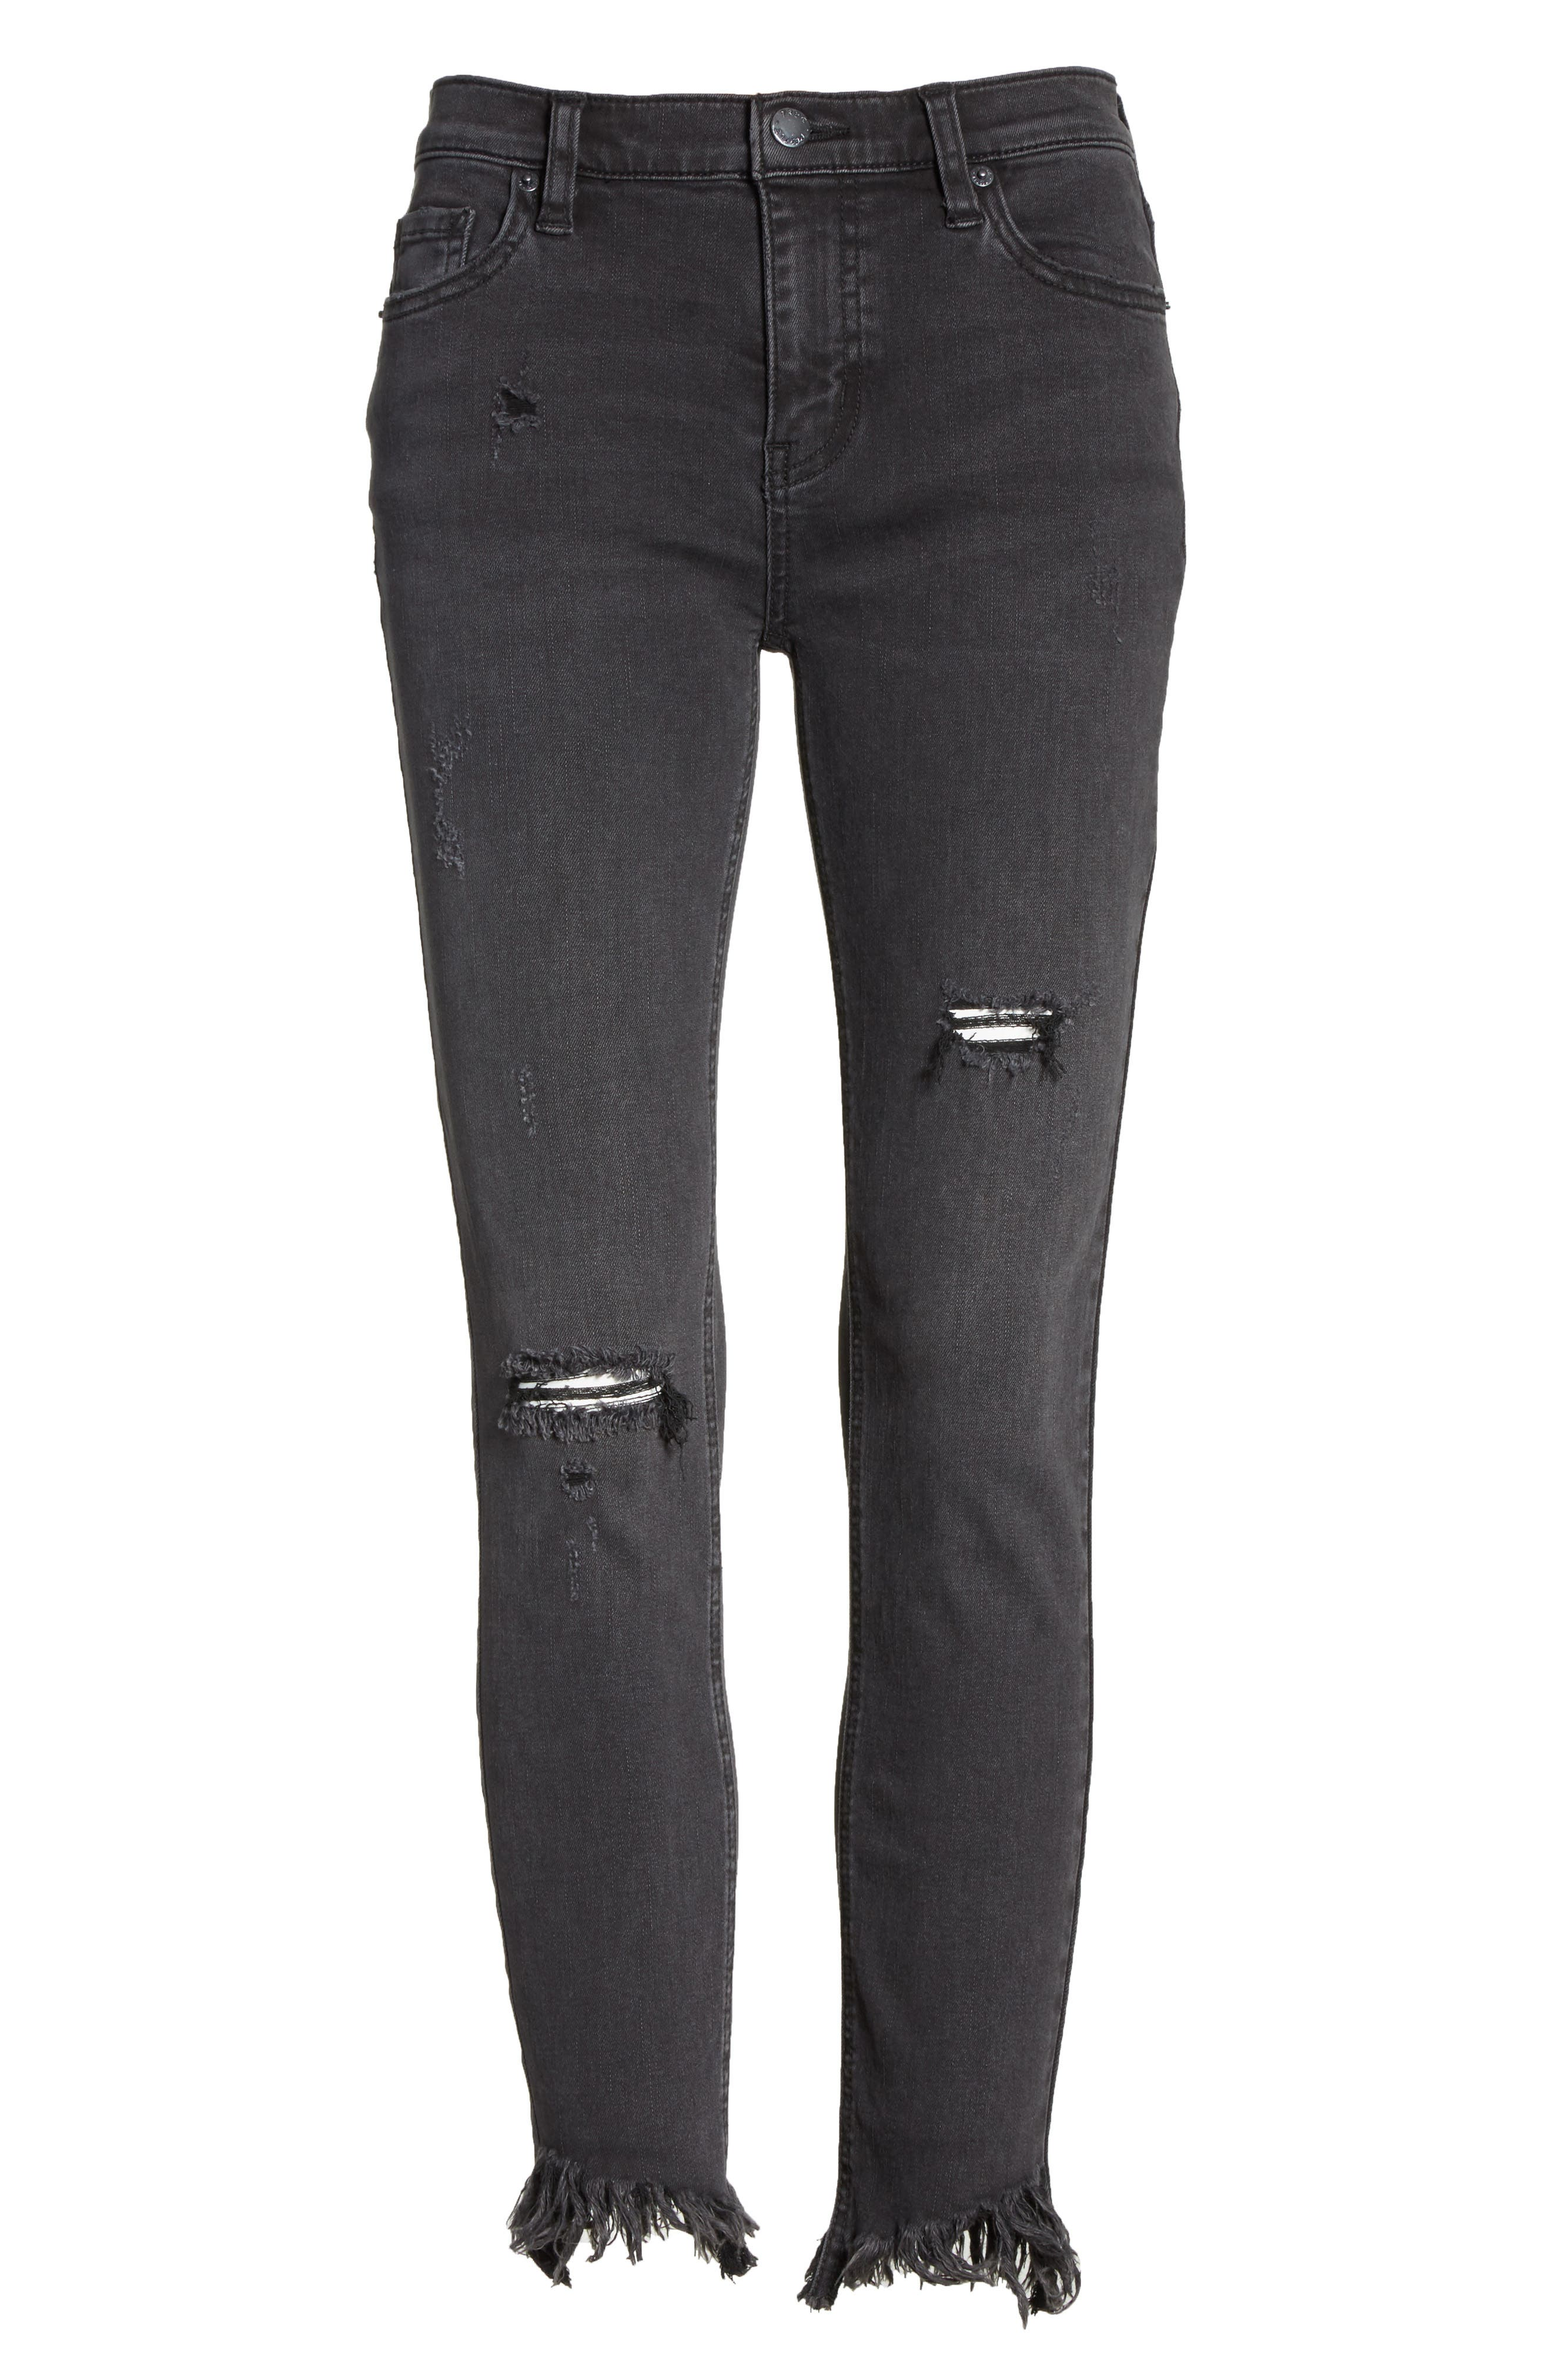 Great Heights Frayed Skinny Jeans,                             Alternate thumbnail 6, color,                             Black